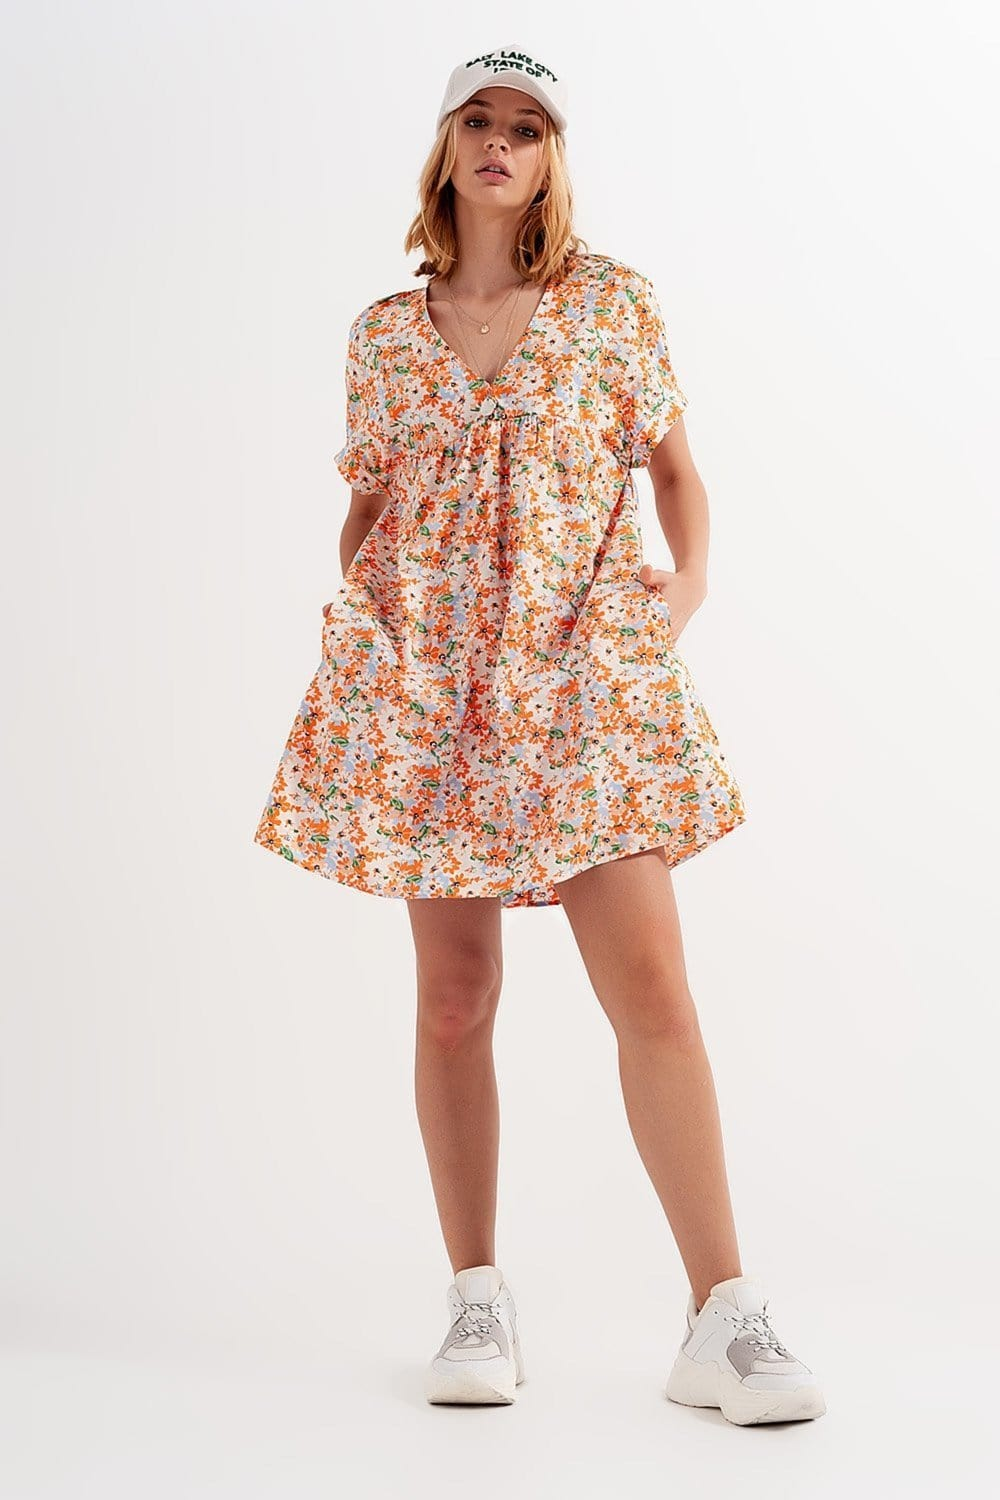 Cotton Babydoll Mini Dress in Orange Floral - Himelhoch's